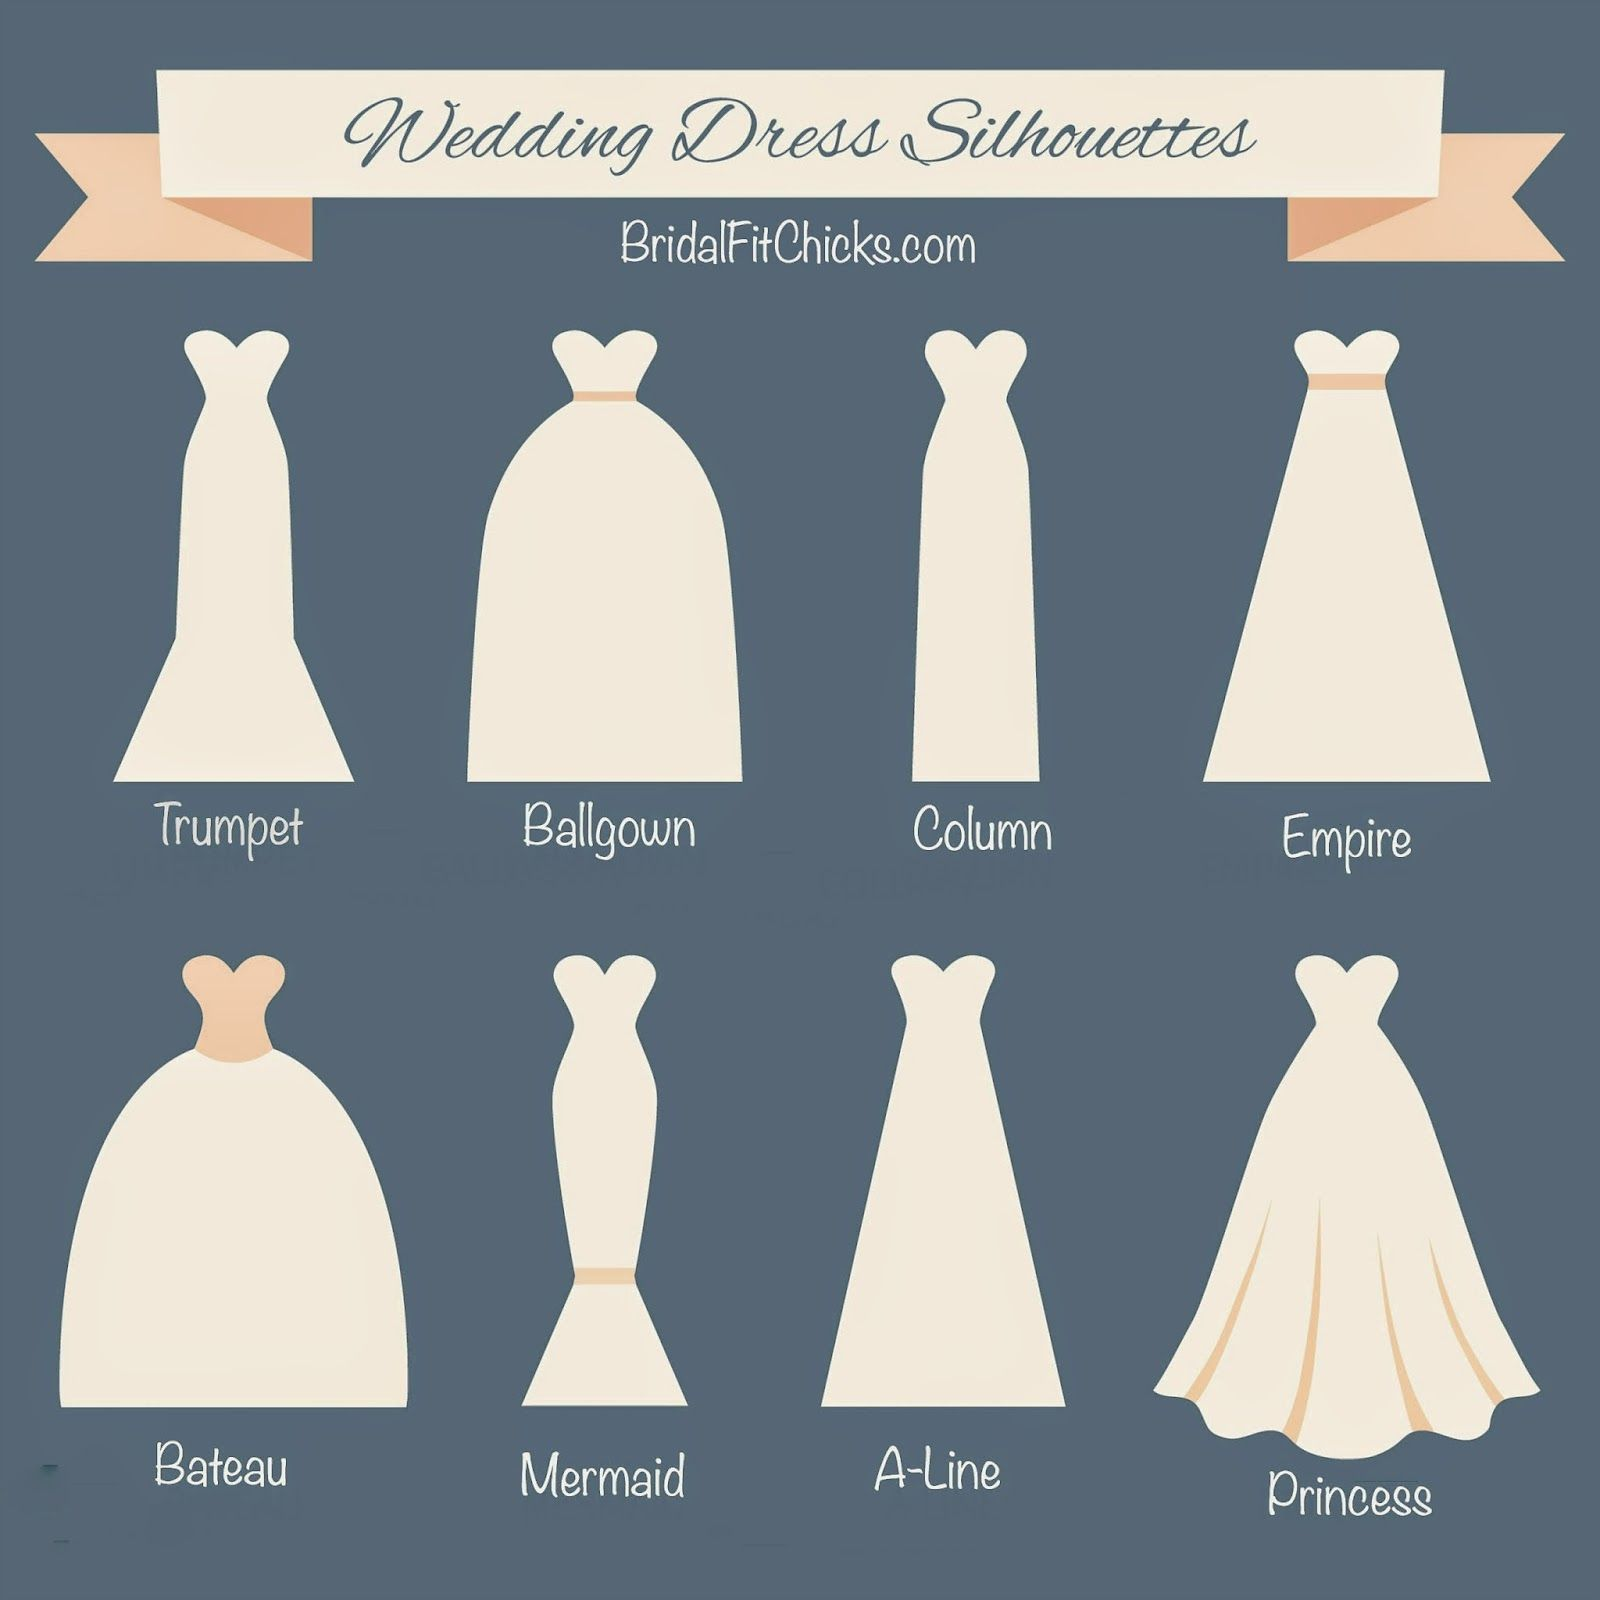 Bridal Fit S A Guide To For Your Perfect Dress Wedding Bride